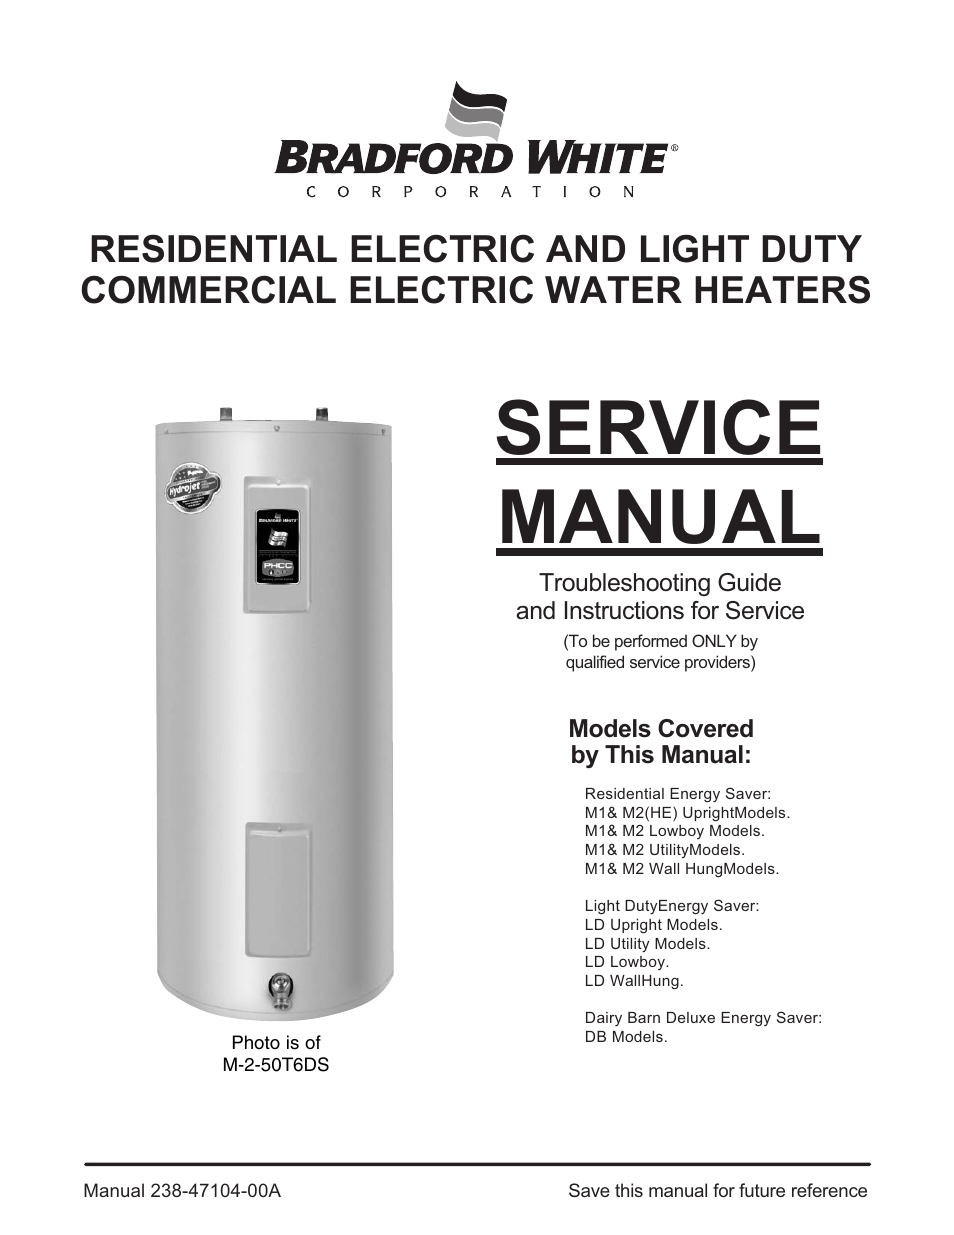 hight resolution of bradford white db 80r3ds user manual 40 pages also for ld wh30l3 1 ld wh20l3 1 ld wh12u3 1 ld wh6u3 1 ld 50l3 3 ld 40l3 3 ld 30l3 3 ld 20l3 3